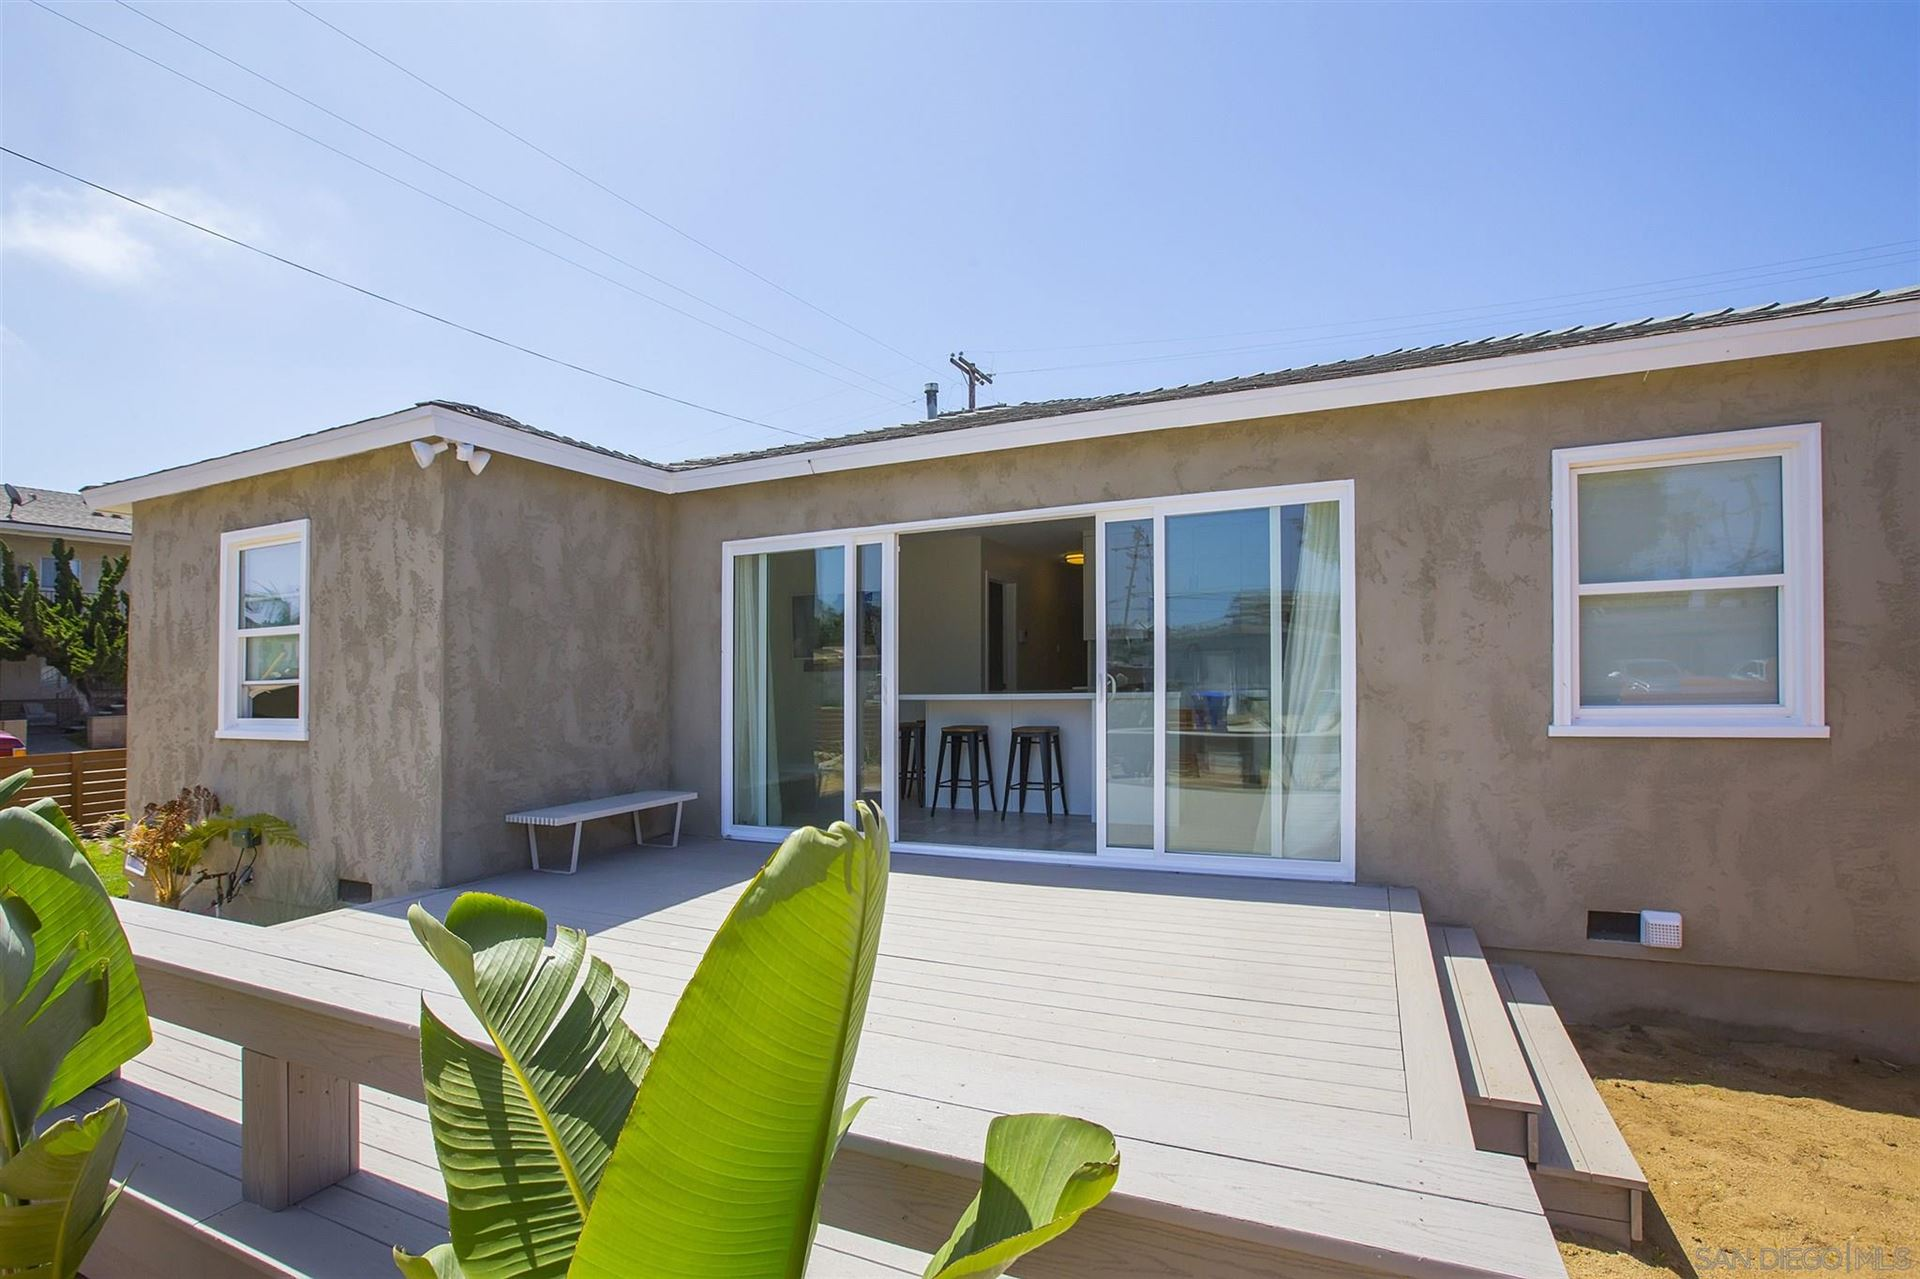 Photo of 806 2nd St., Imperial Beach, CA 91932 (MLS # 210007259)